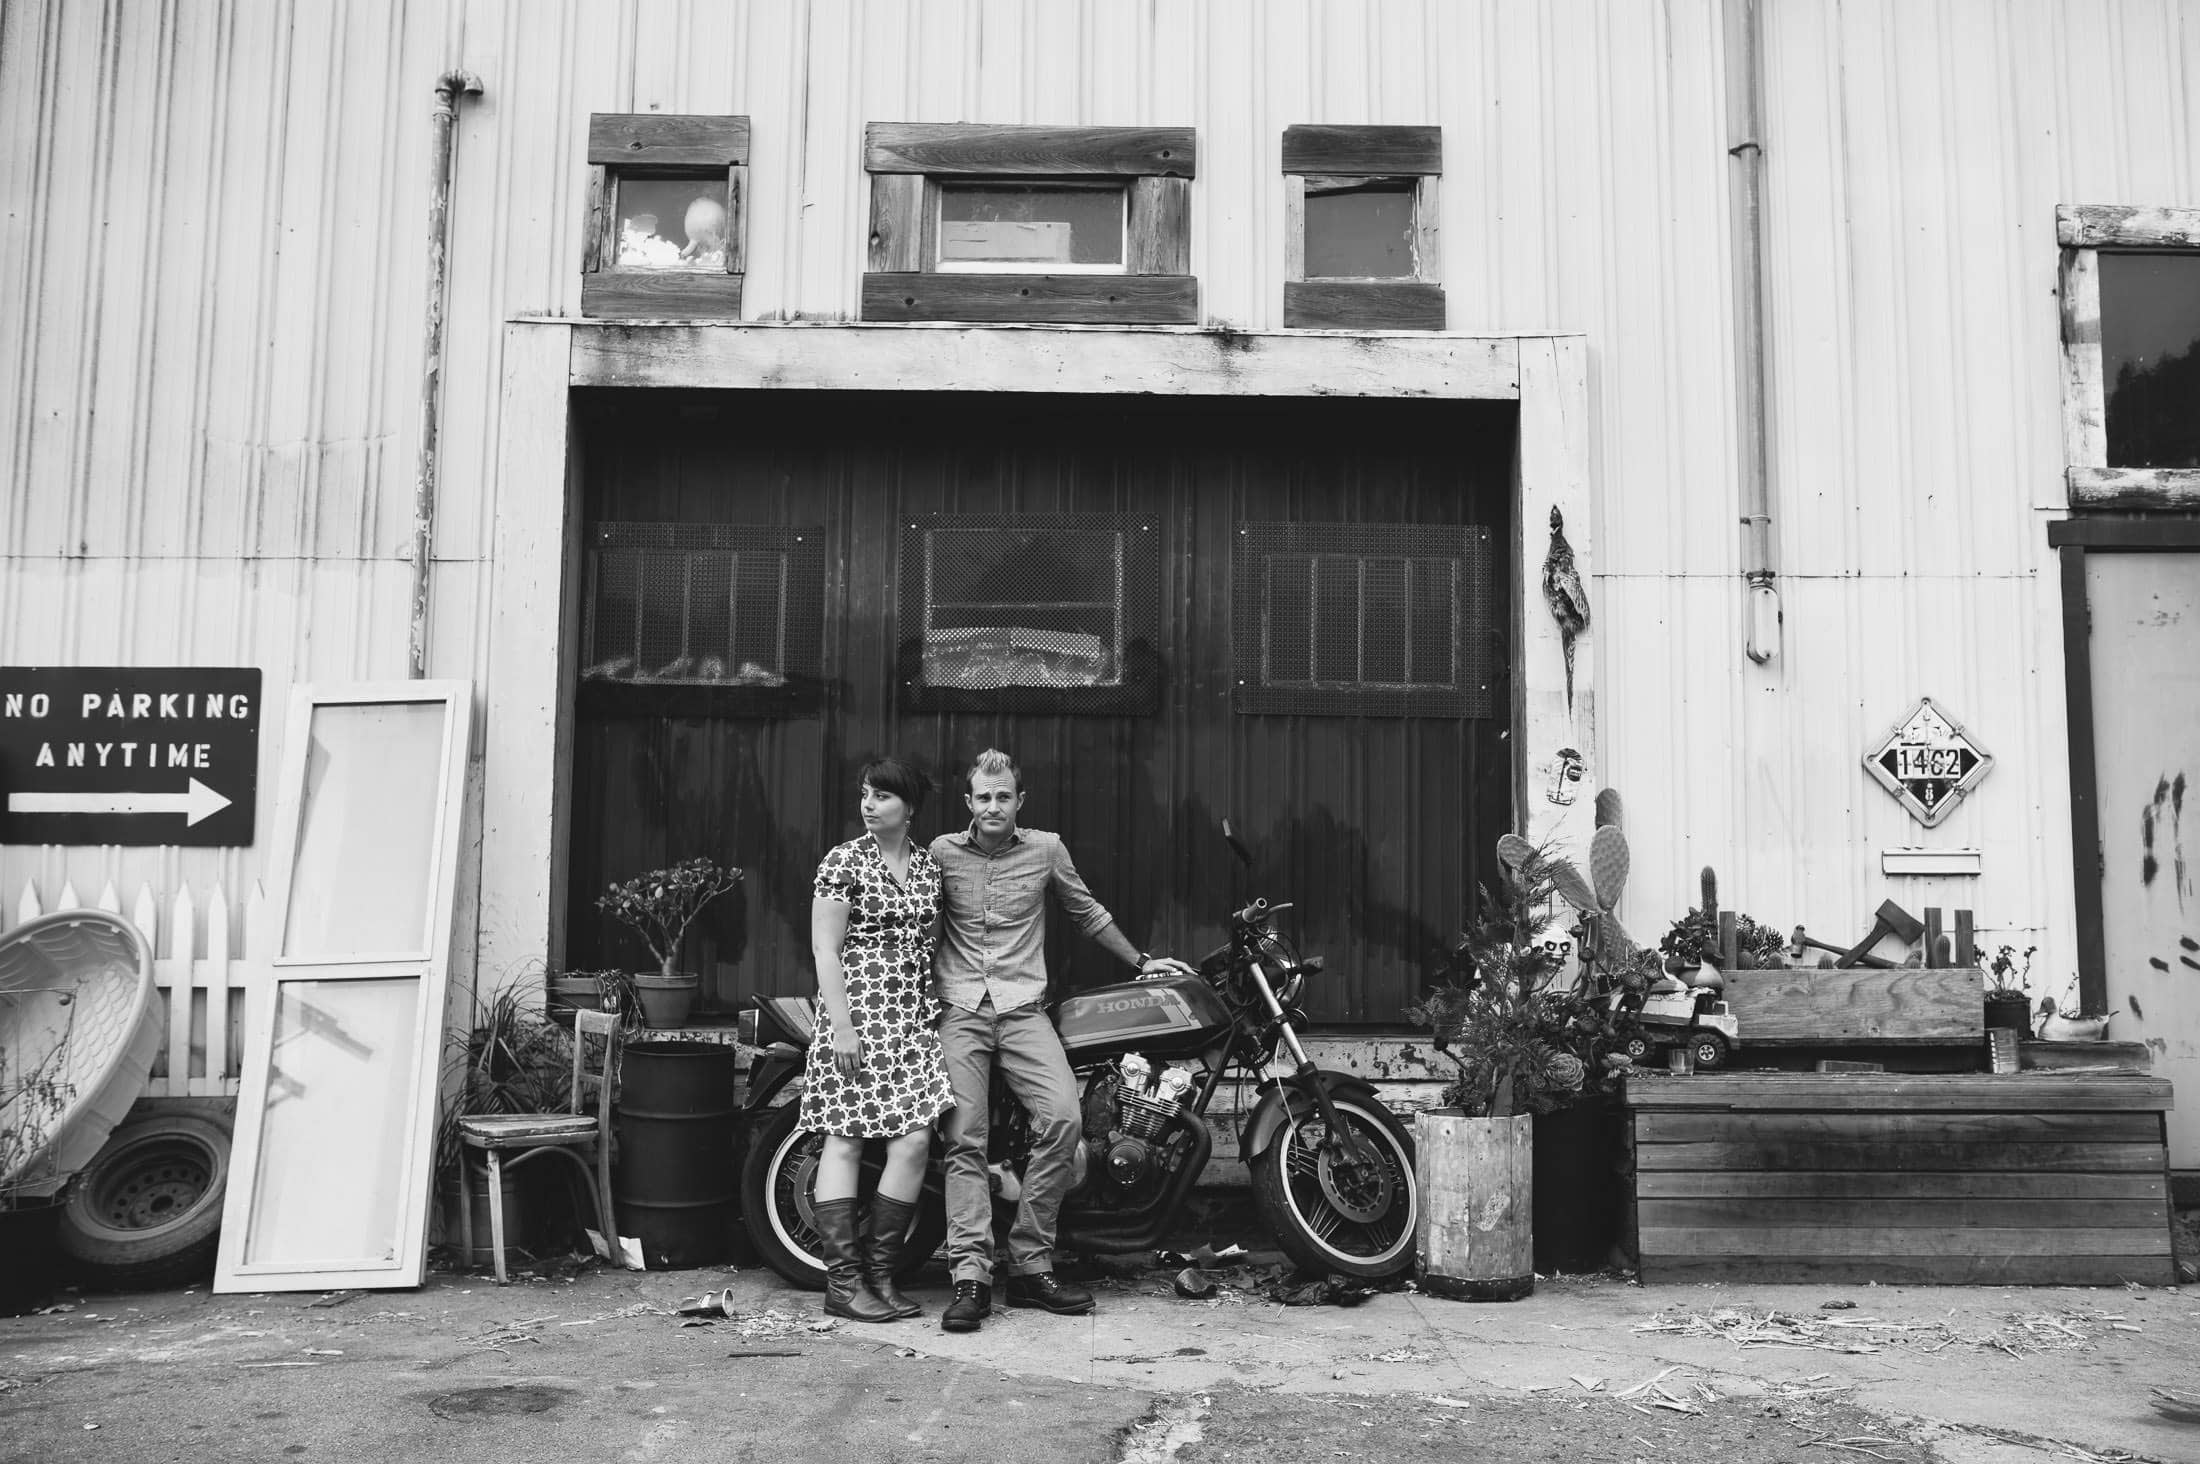 Artistic San Francisco Engagement with Motorcycle in Black and White